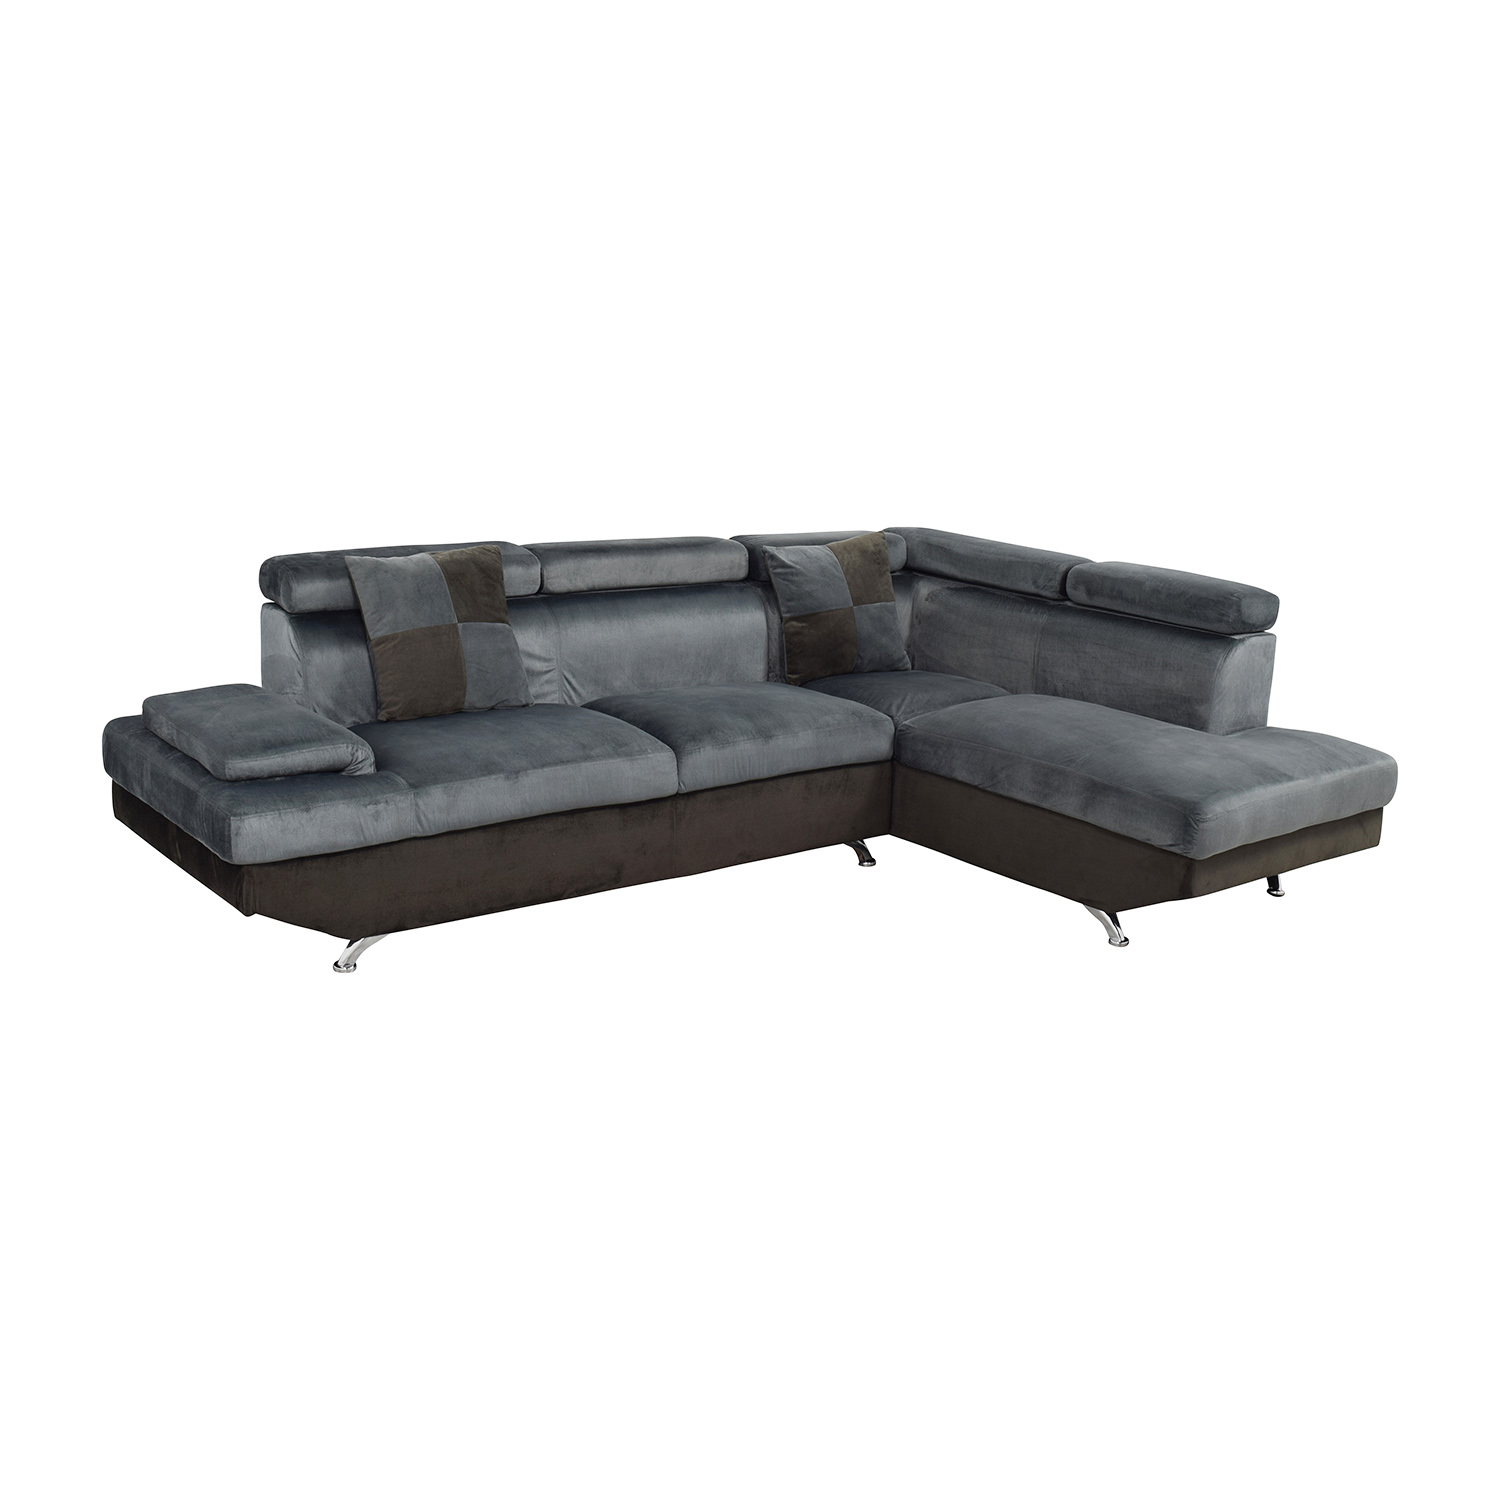 57 off beverly furniture beverly furniture two piece for Buy grey sectional sofa